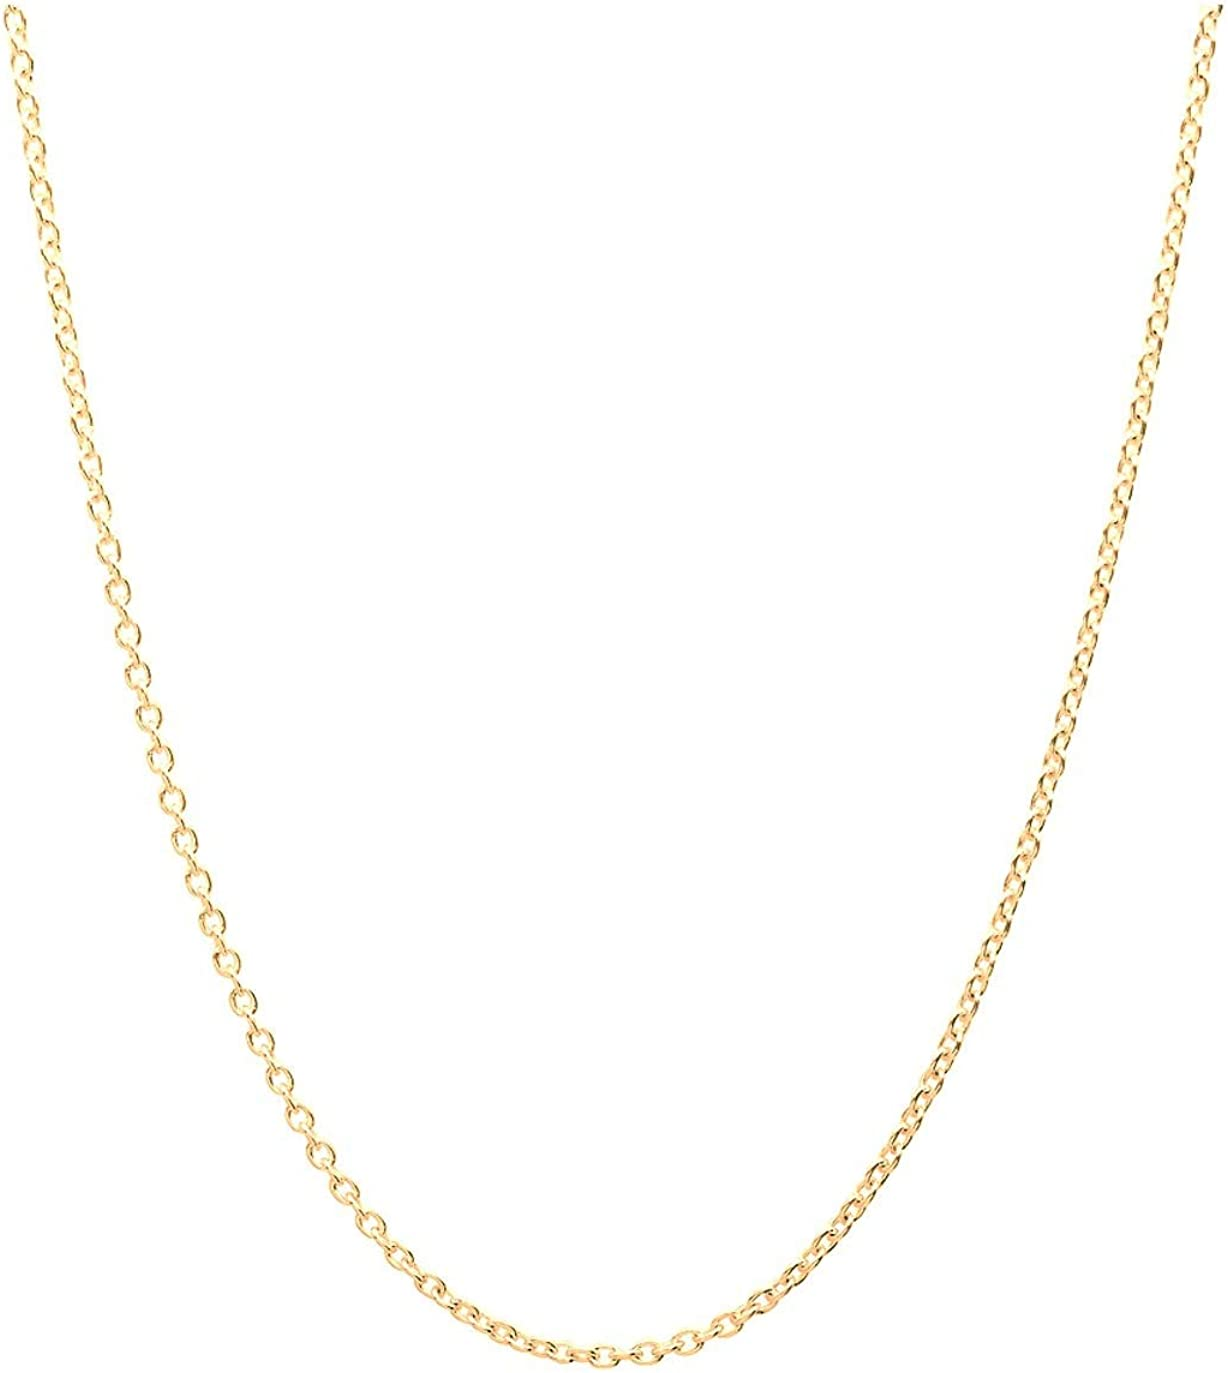 14K Gold 2.5mm Diamond Cut Anchor/Cable Chain Necklace - Available in Multiple Colors and Sizes